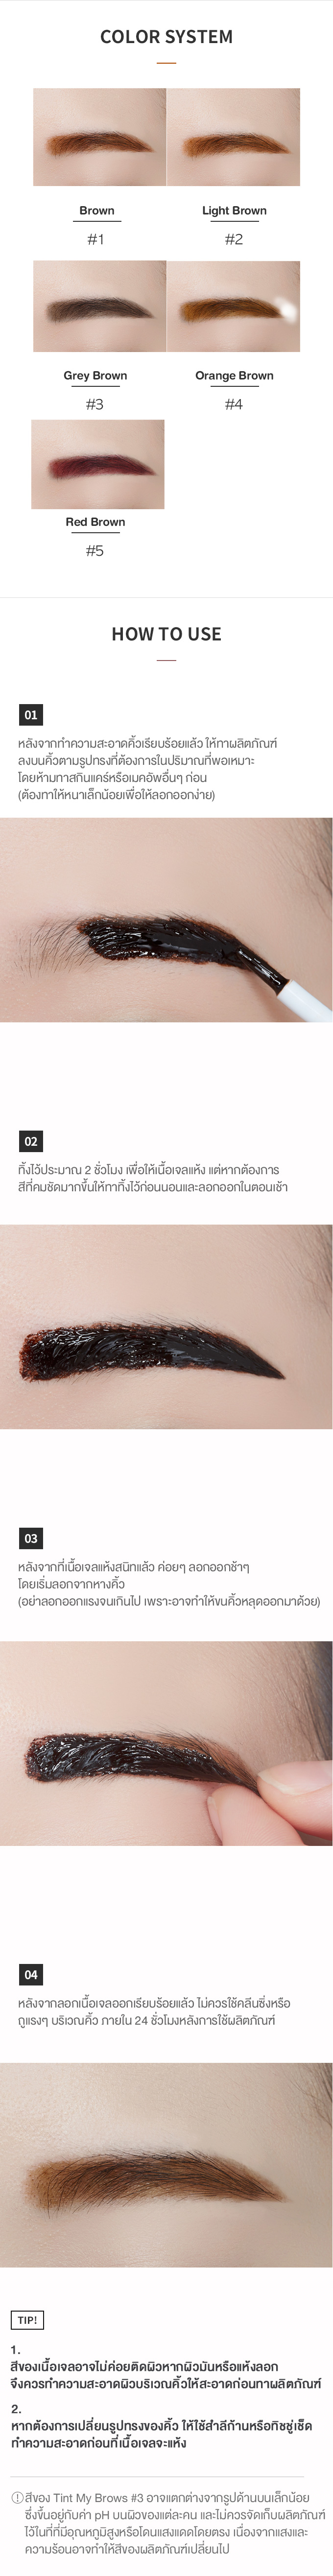 Tint My Brows Gel NEW_02